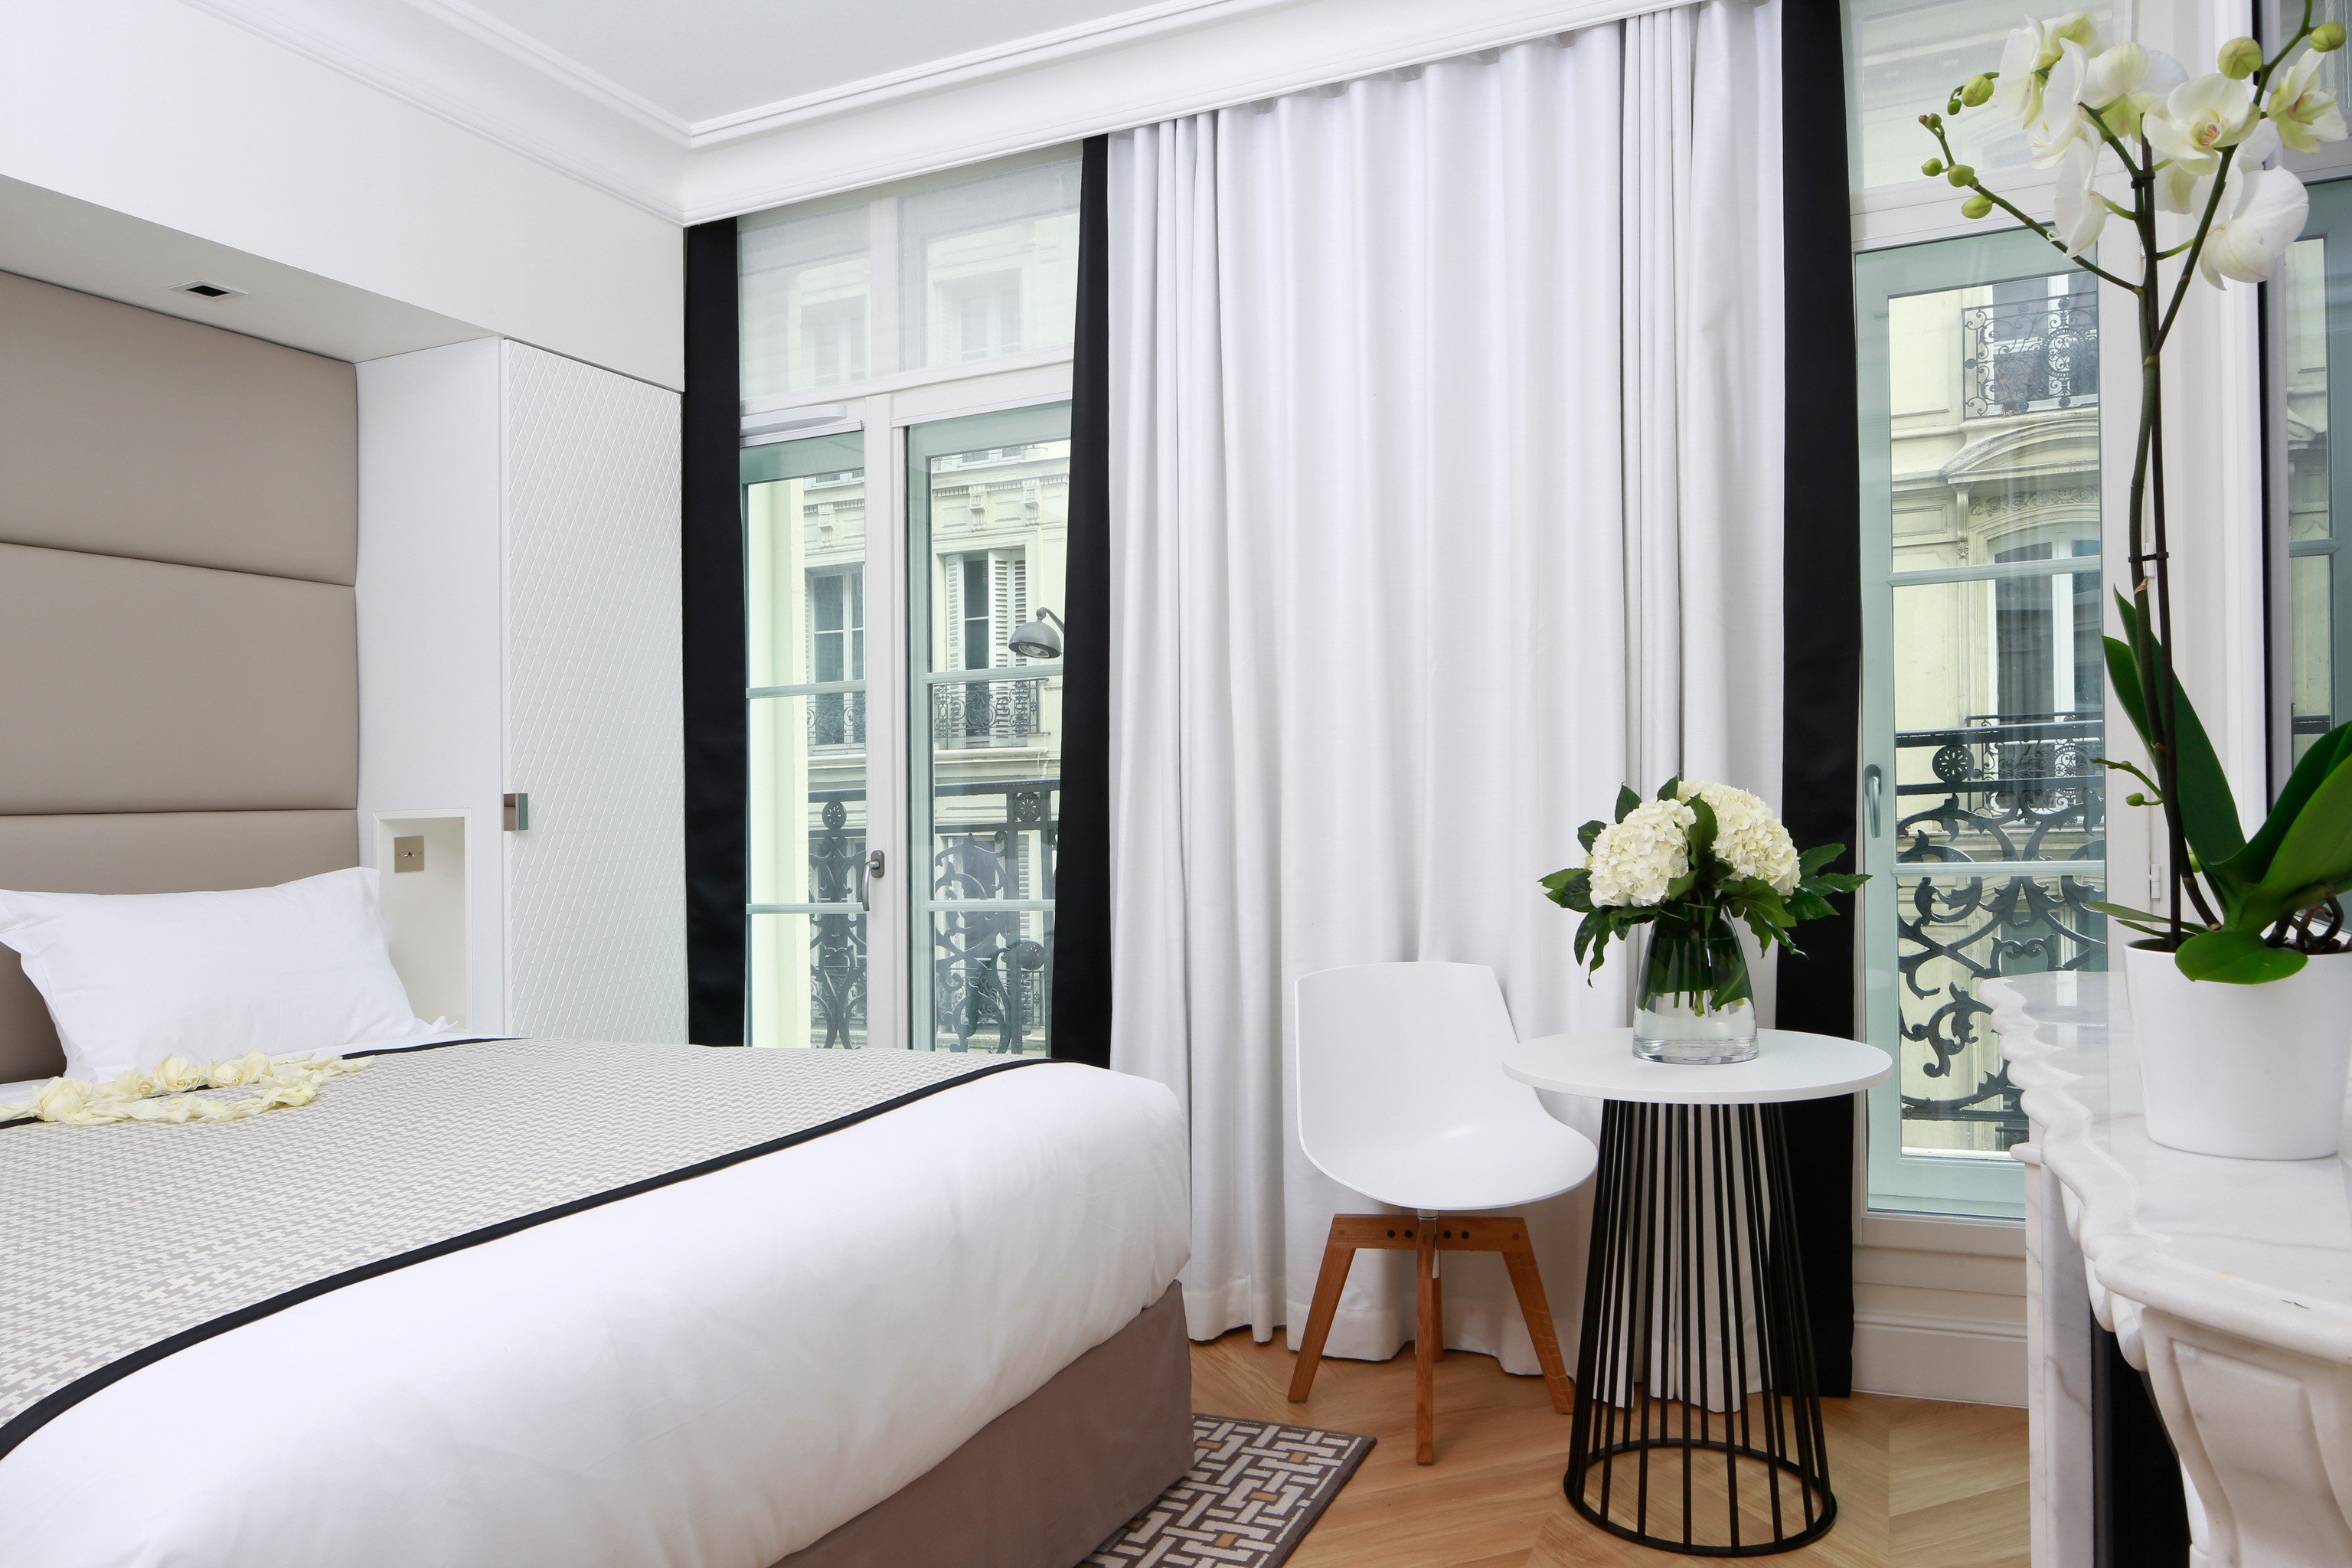 Bedroom City Hip Living Modern Trip Ideas indoor bed floor window room property interior design hotel curtain home Suite window covering window treatment textile real estate estate cottage apartment furniture decorated